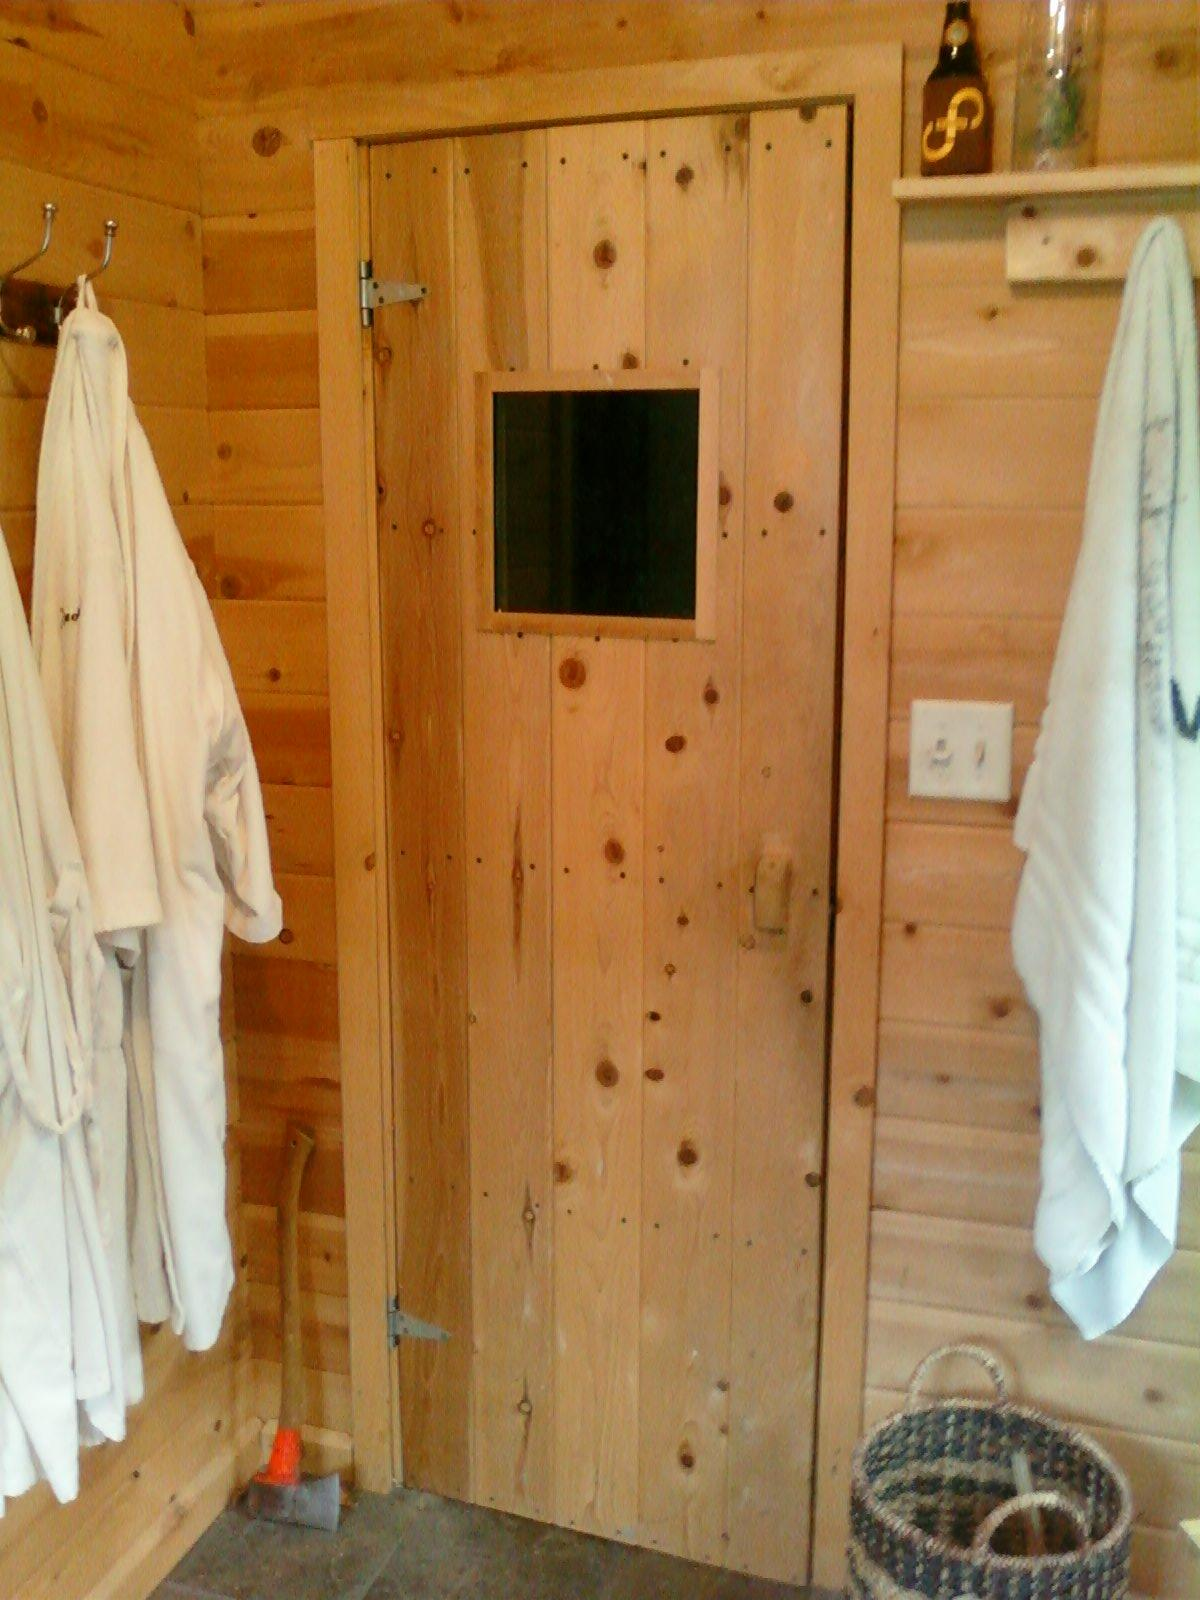 Build your own sauna door saunatimes build your own sauna door planetlyrics Gallery